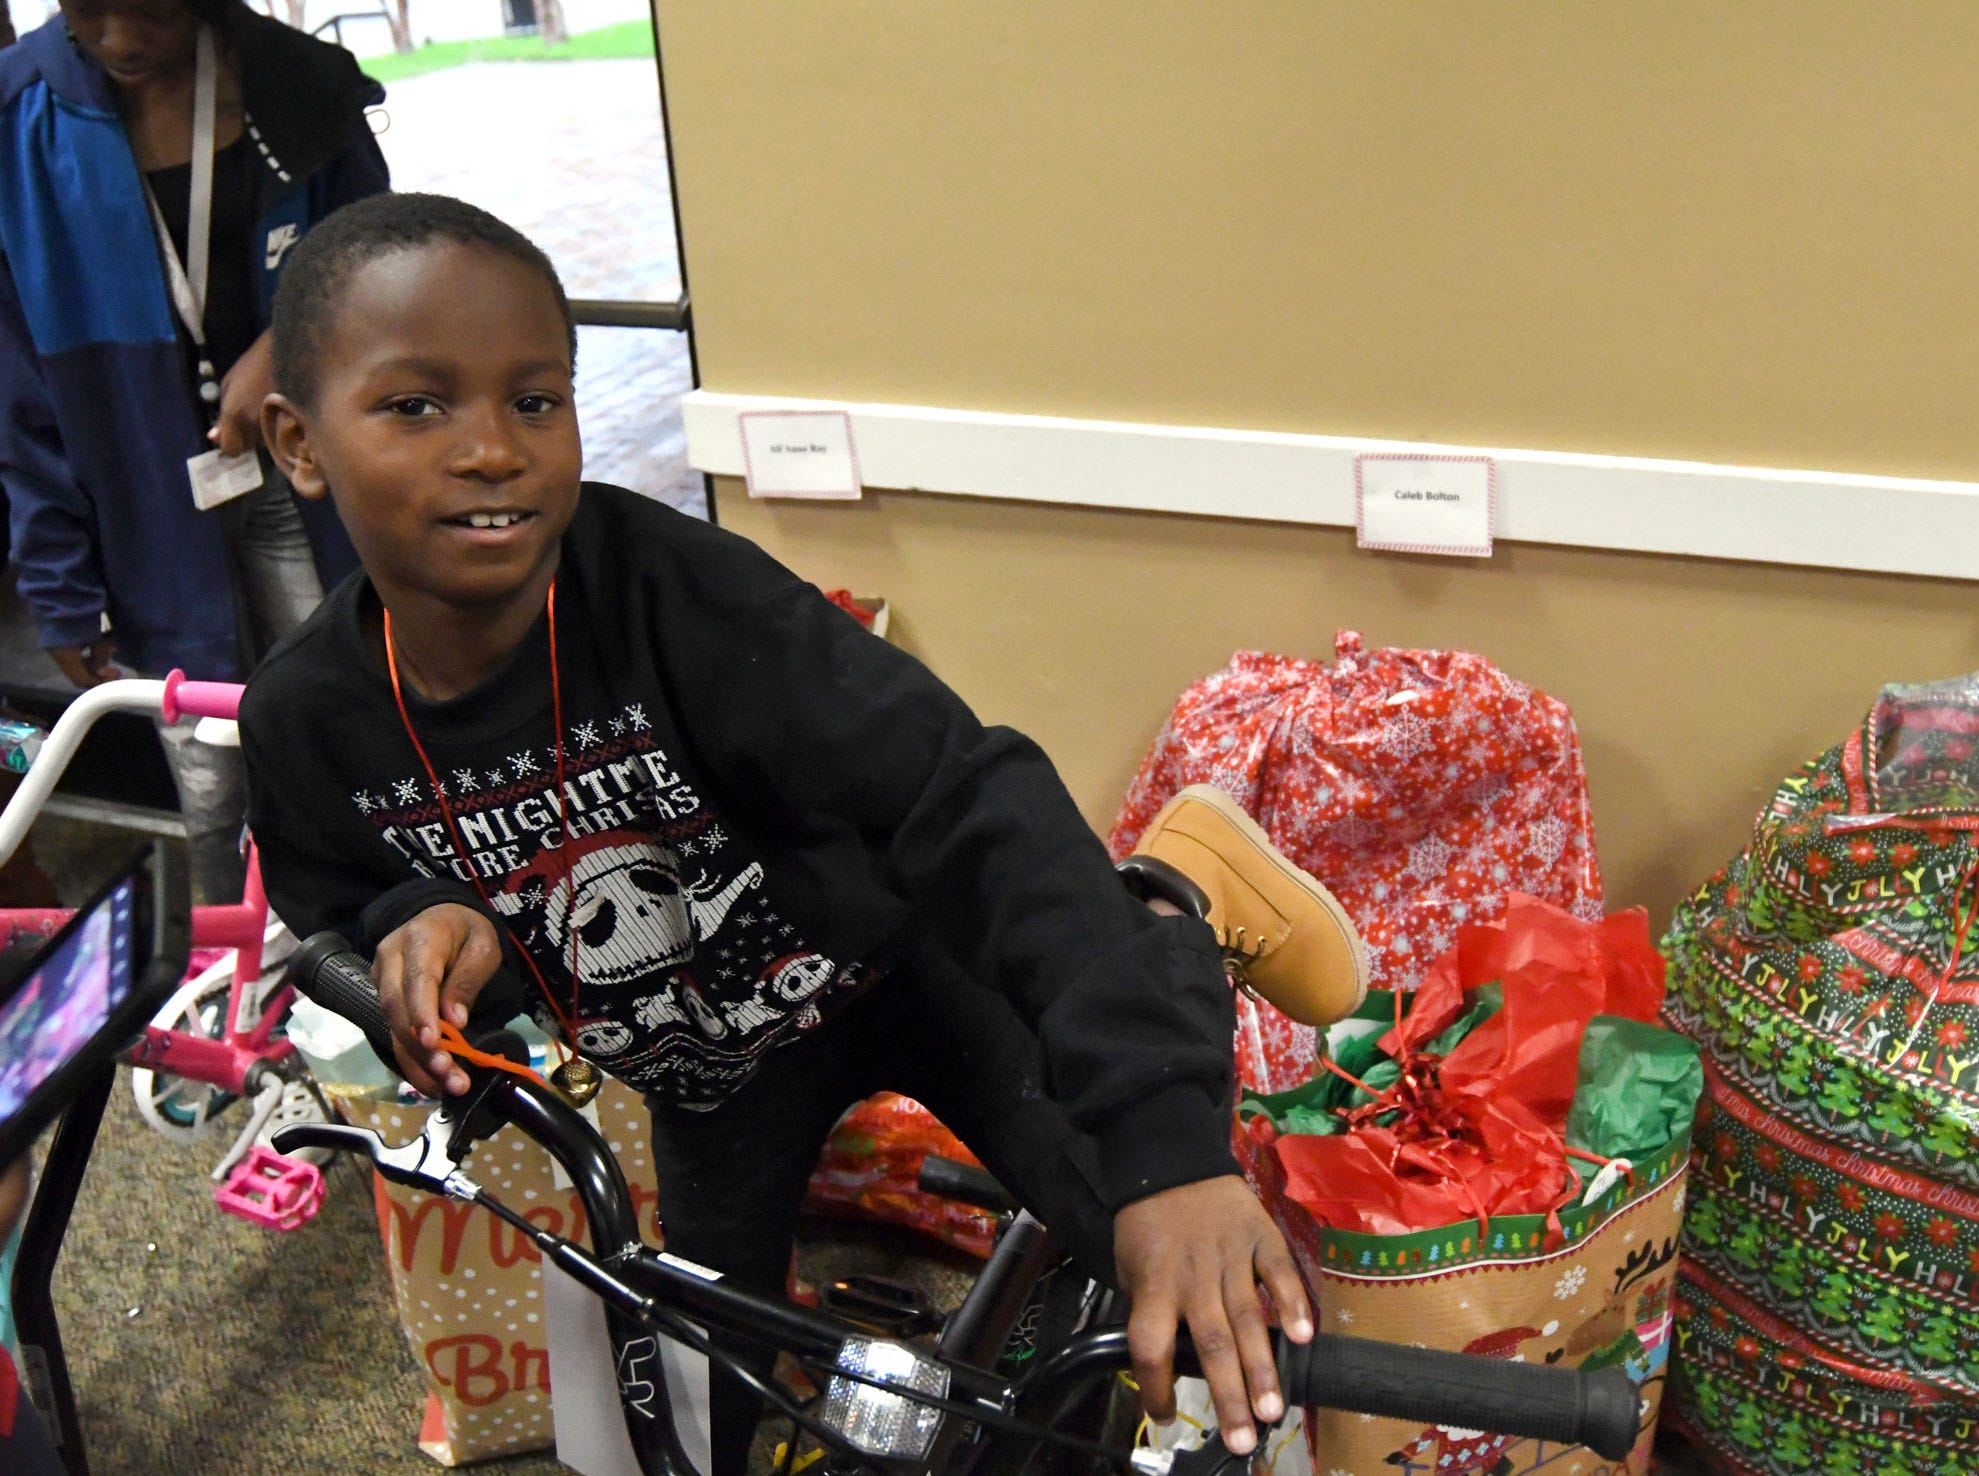 Caleb Bolton gets on his new bike during the Hattiesburg Police Department's Victim Service Unit's Hearts of Hope Christmas party for victims affected by violent crimes at Jackie Sherrill Community Center on Thursday, December 20, 2018.